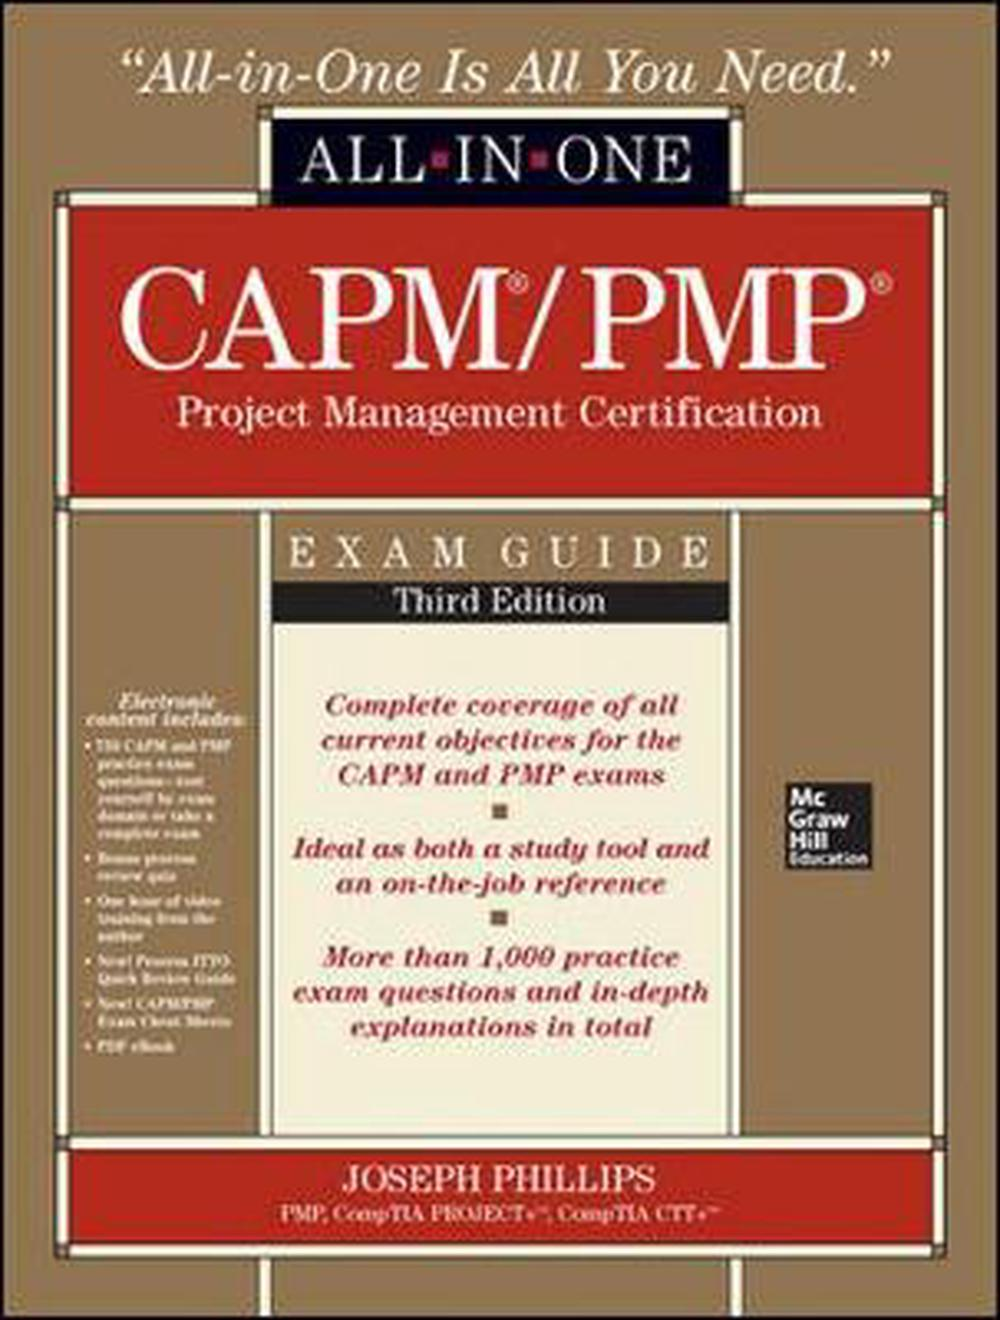 Capmpmp project management certification all in one exam guide image is loading capm pmp project management certification all in one xflitez Gallery